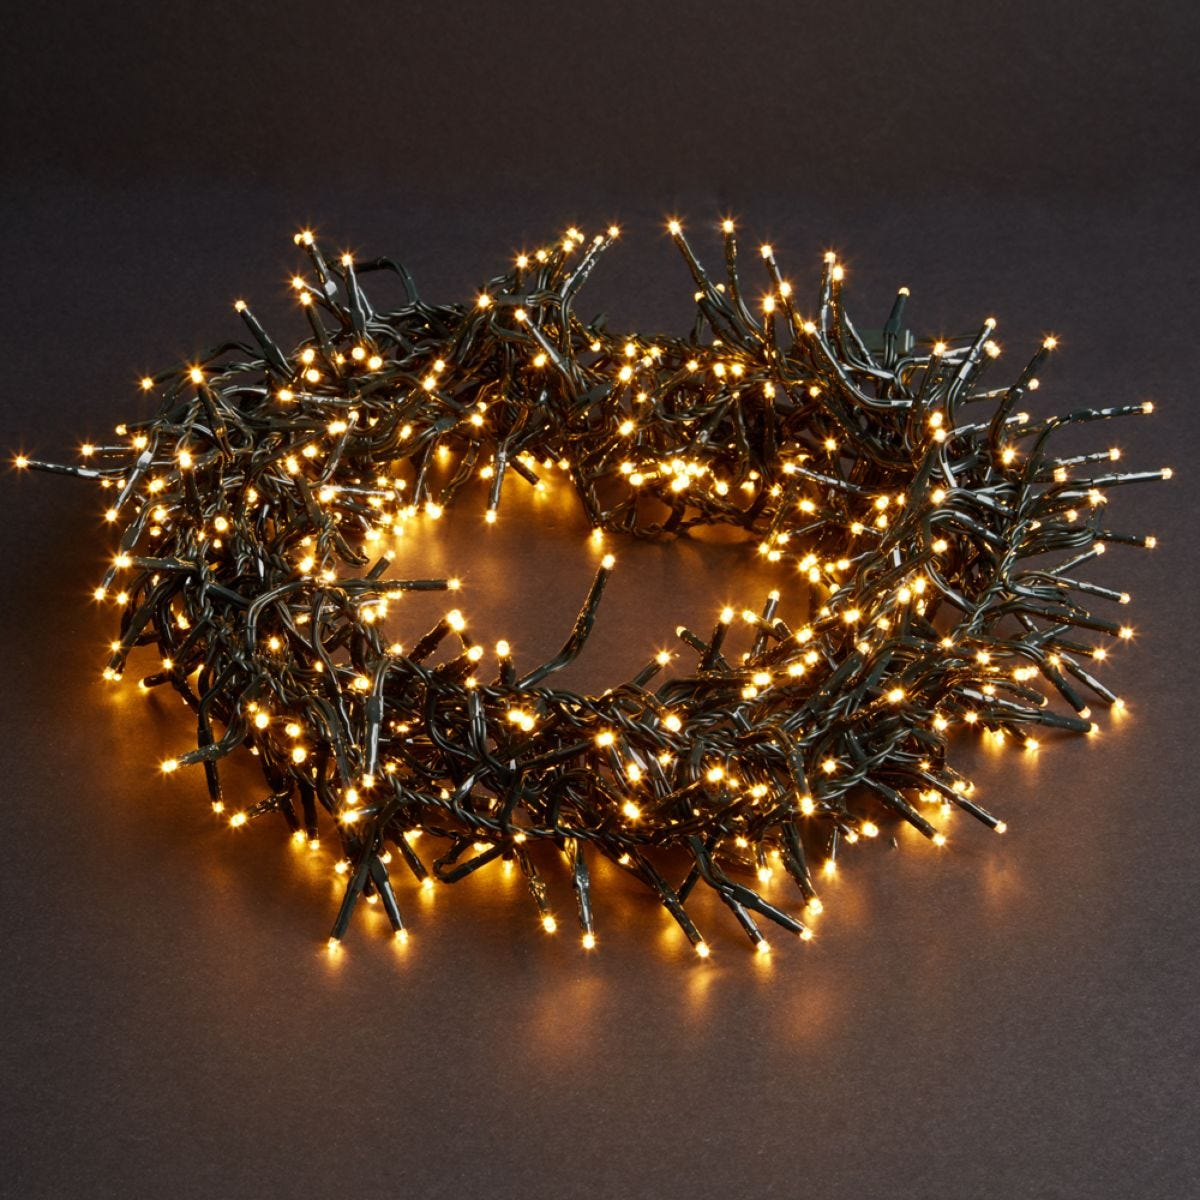 720 Low Voltage LED Traditional Cluster Lights - Warm White